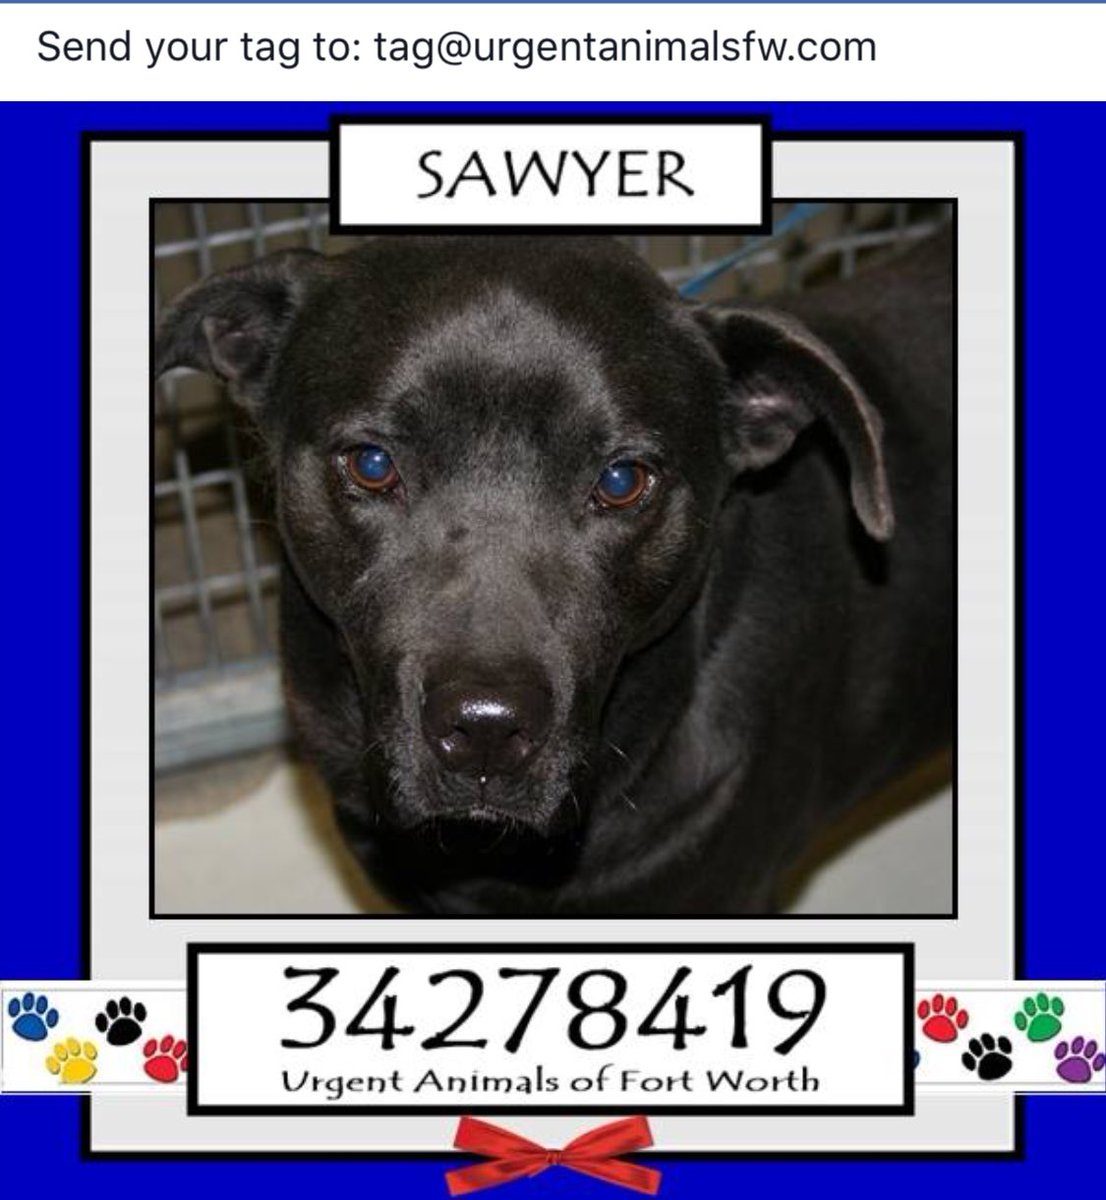 SAWYER #FortWorth #TX 2BANYTIMENEEDS A #HERO TO STEP UP AND SAVE PLZ HELP #Adopt #Foster #Pledge for #Rescue   https://www. facebook.com/fwaccurgents/p osts/1480608482011241 &nbsp; … <br>http://pic.twitter.com/UFZqNWLVbC